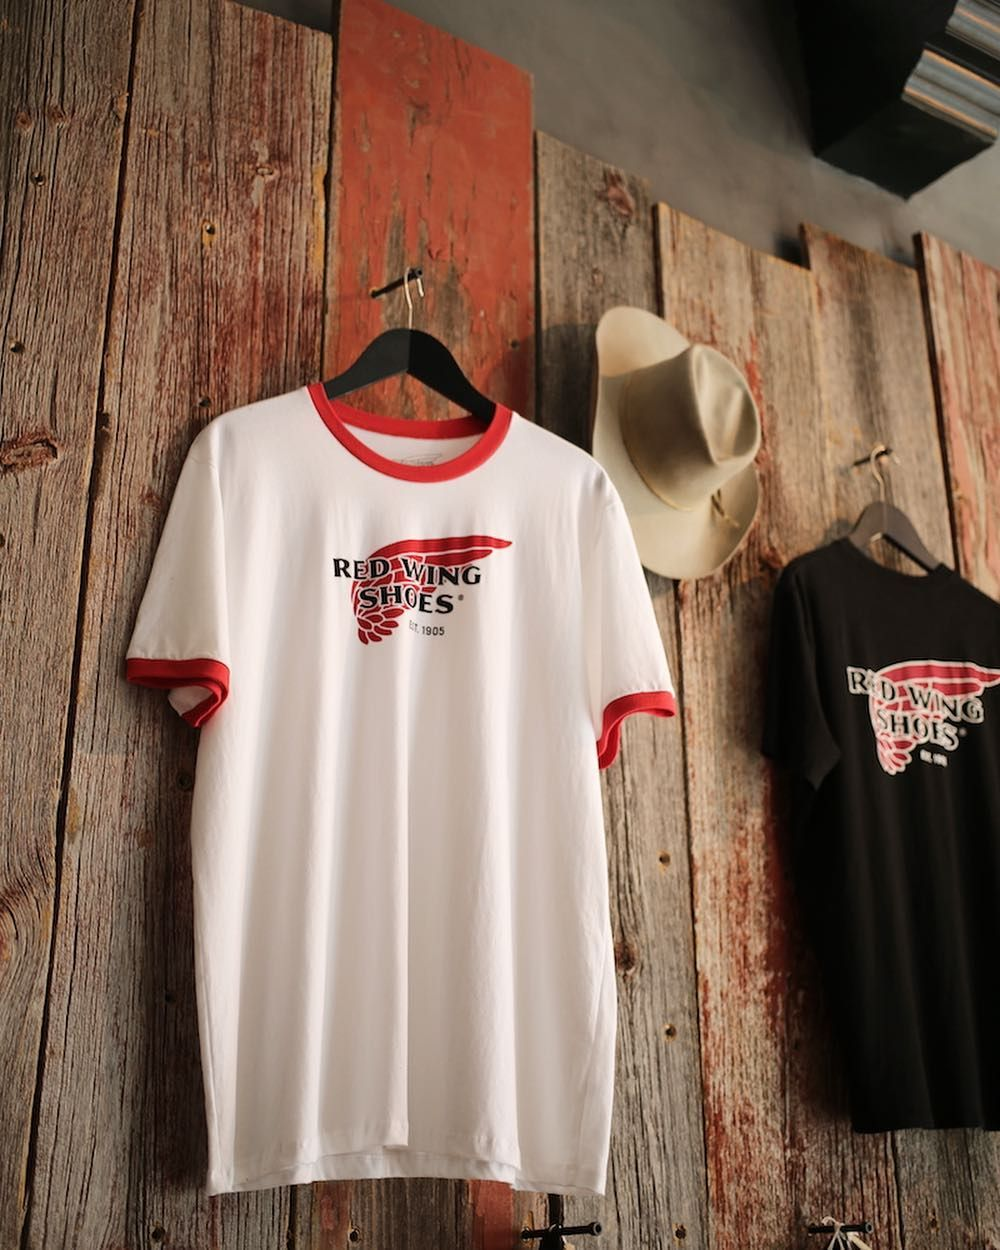 96fad88b Are you all set with t-shirts this summer? Not without this stunning Red